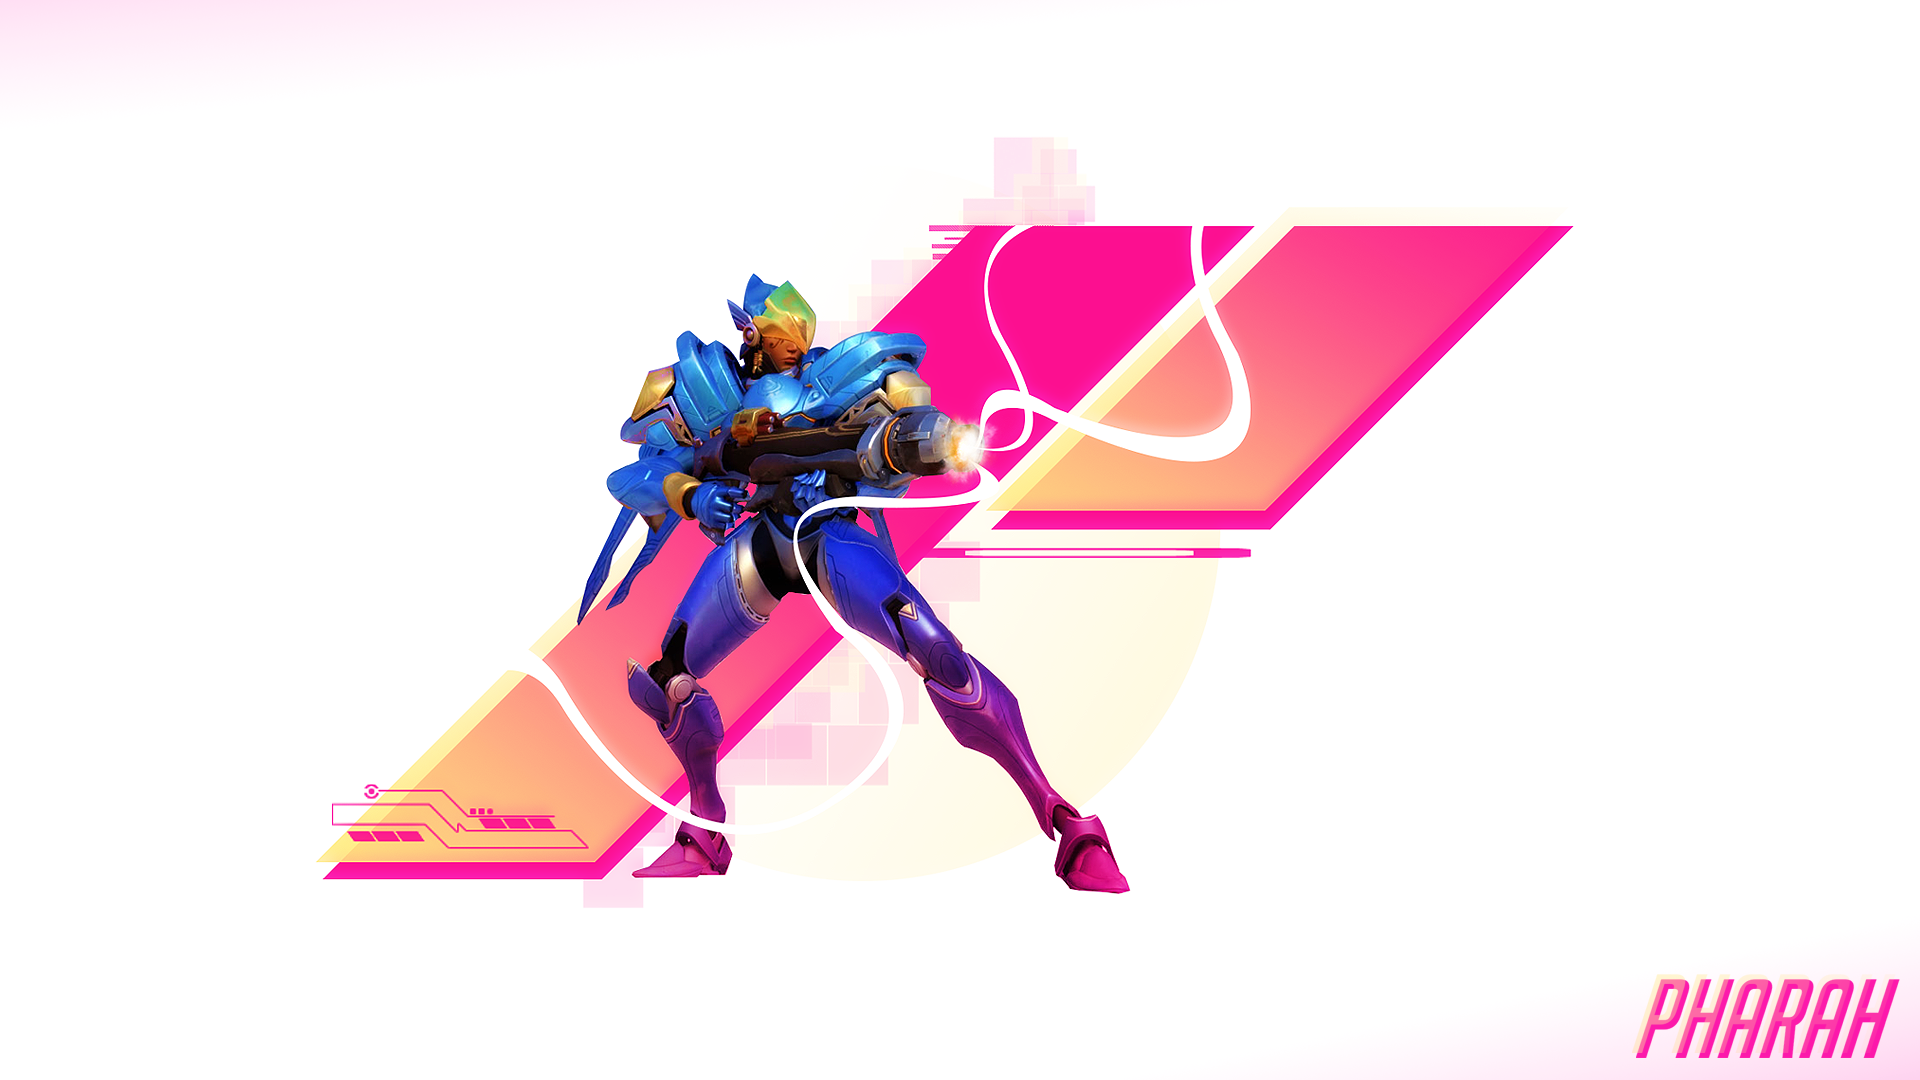 OC Pharah Overwatch Wallpaper [1920x1080] Overwatch